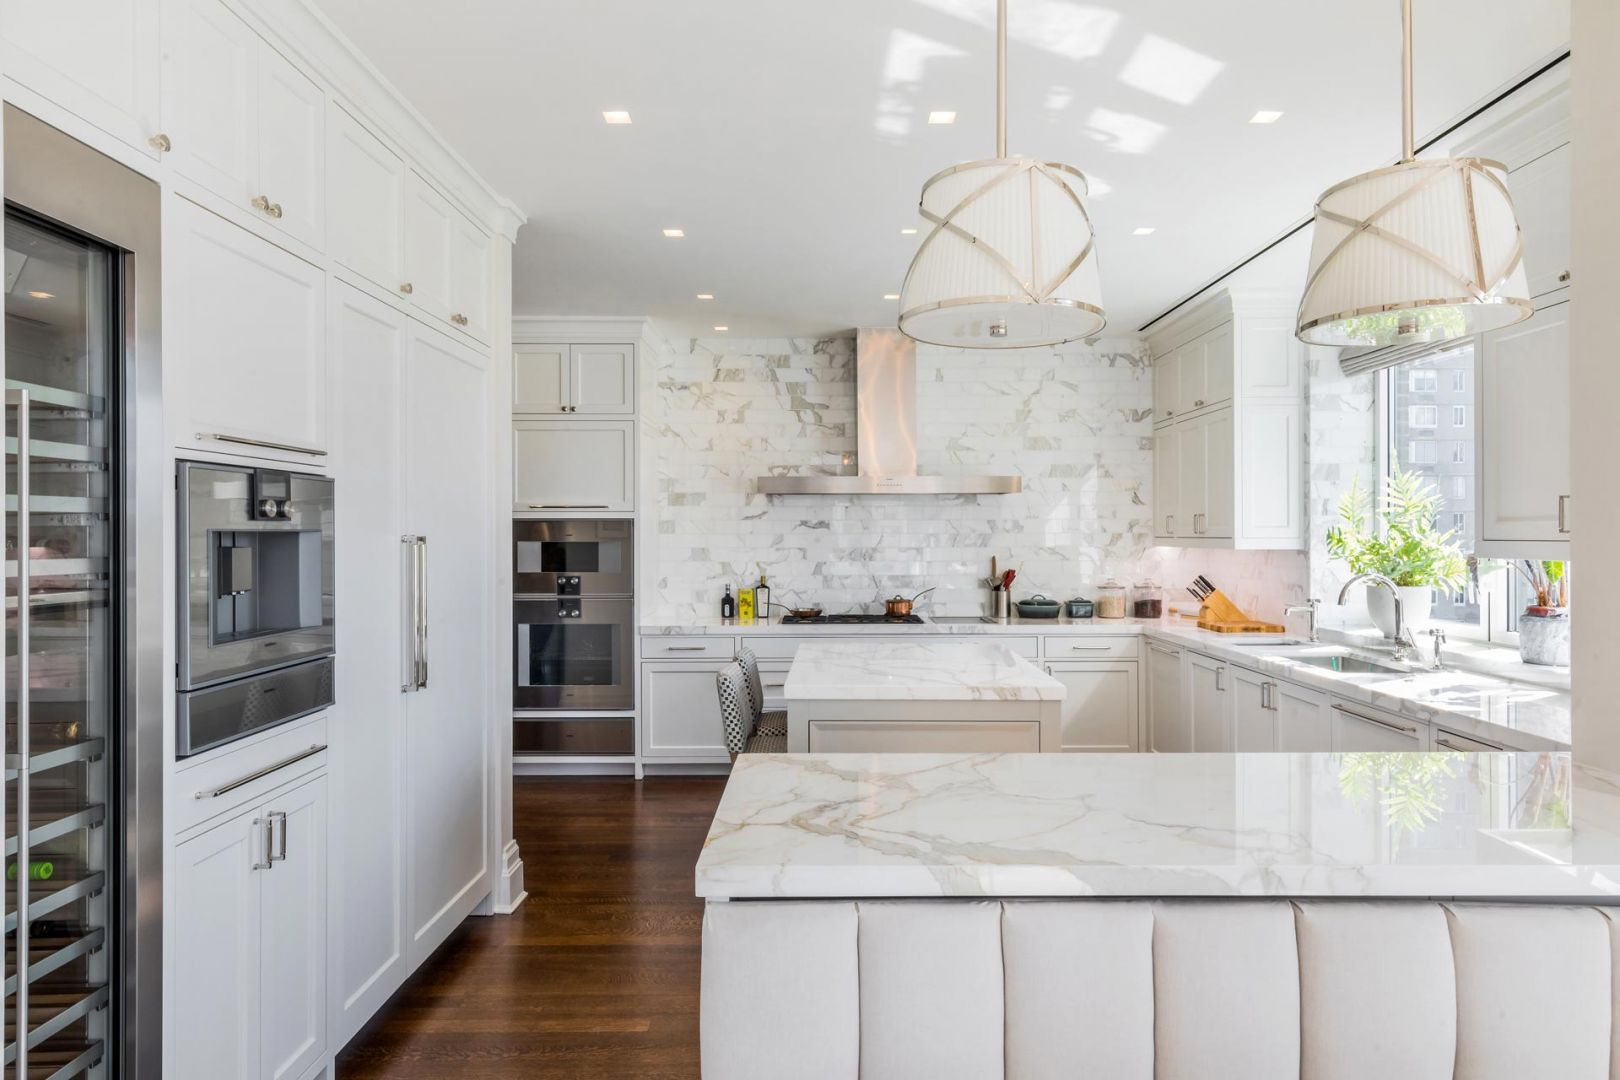 Direct Flooring provides insights into the top flooring choices in new construction and challenges for each